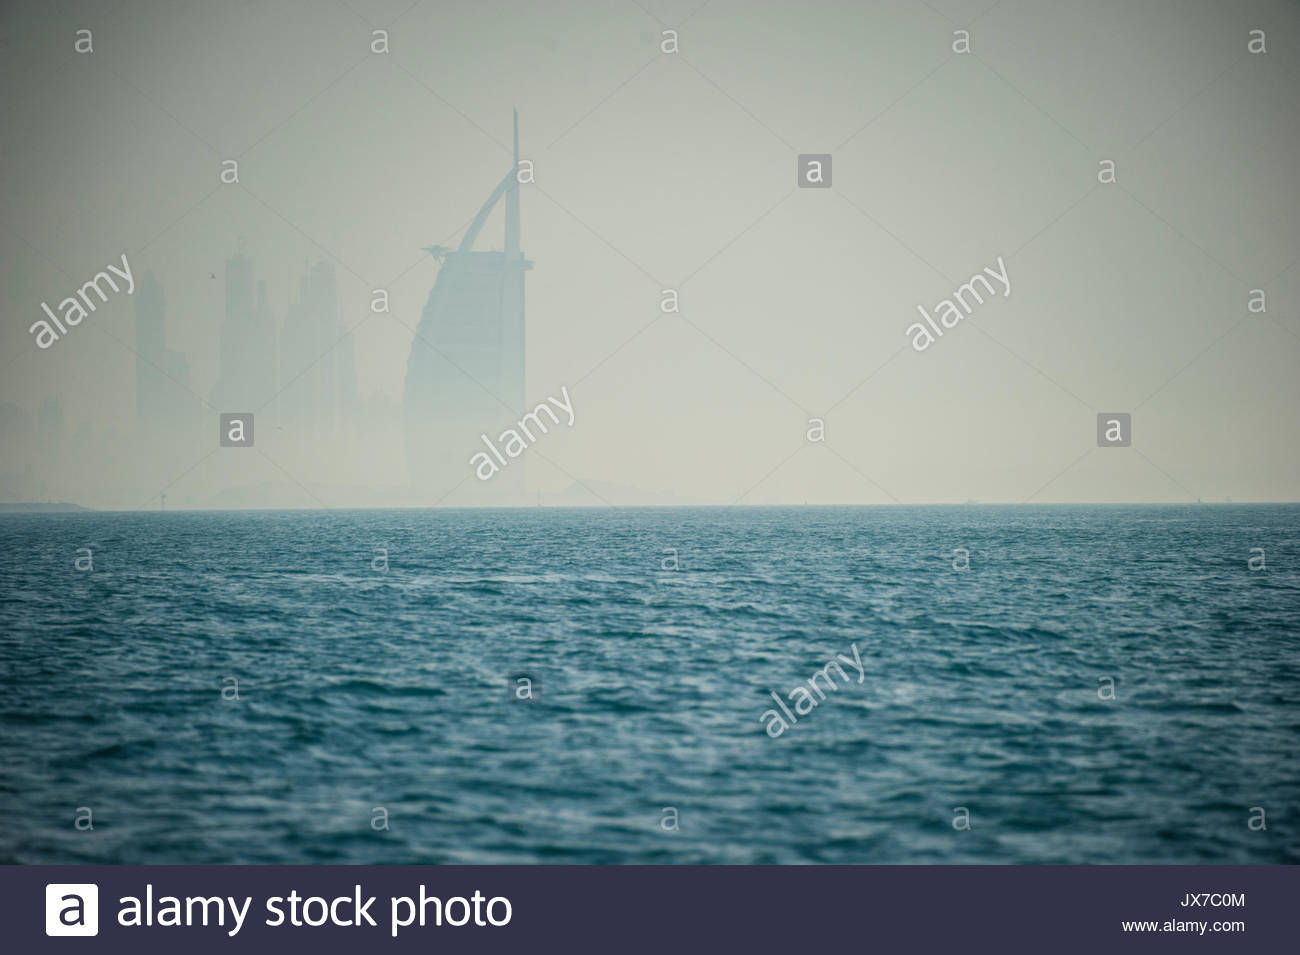 The Burj al Arab skyscraper rises off the coast of Dubai. - Stock Image